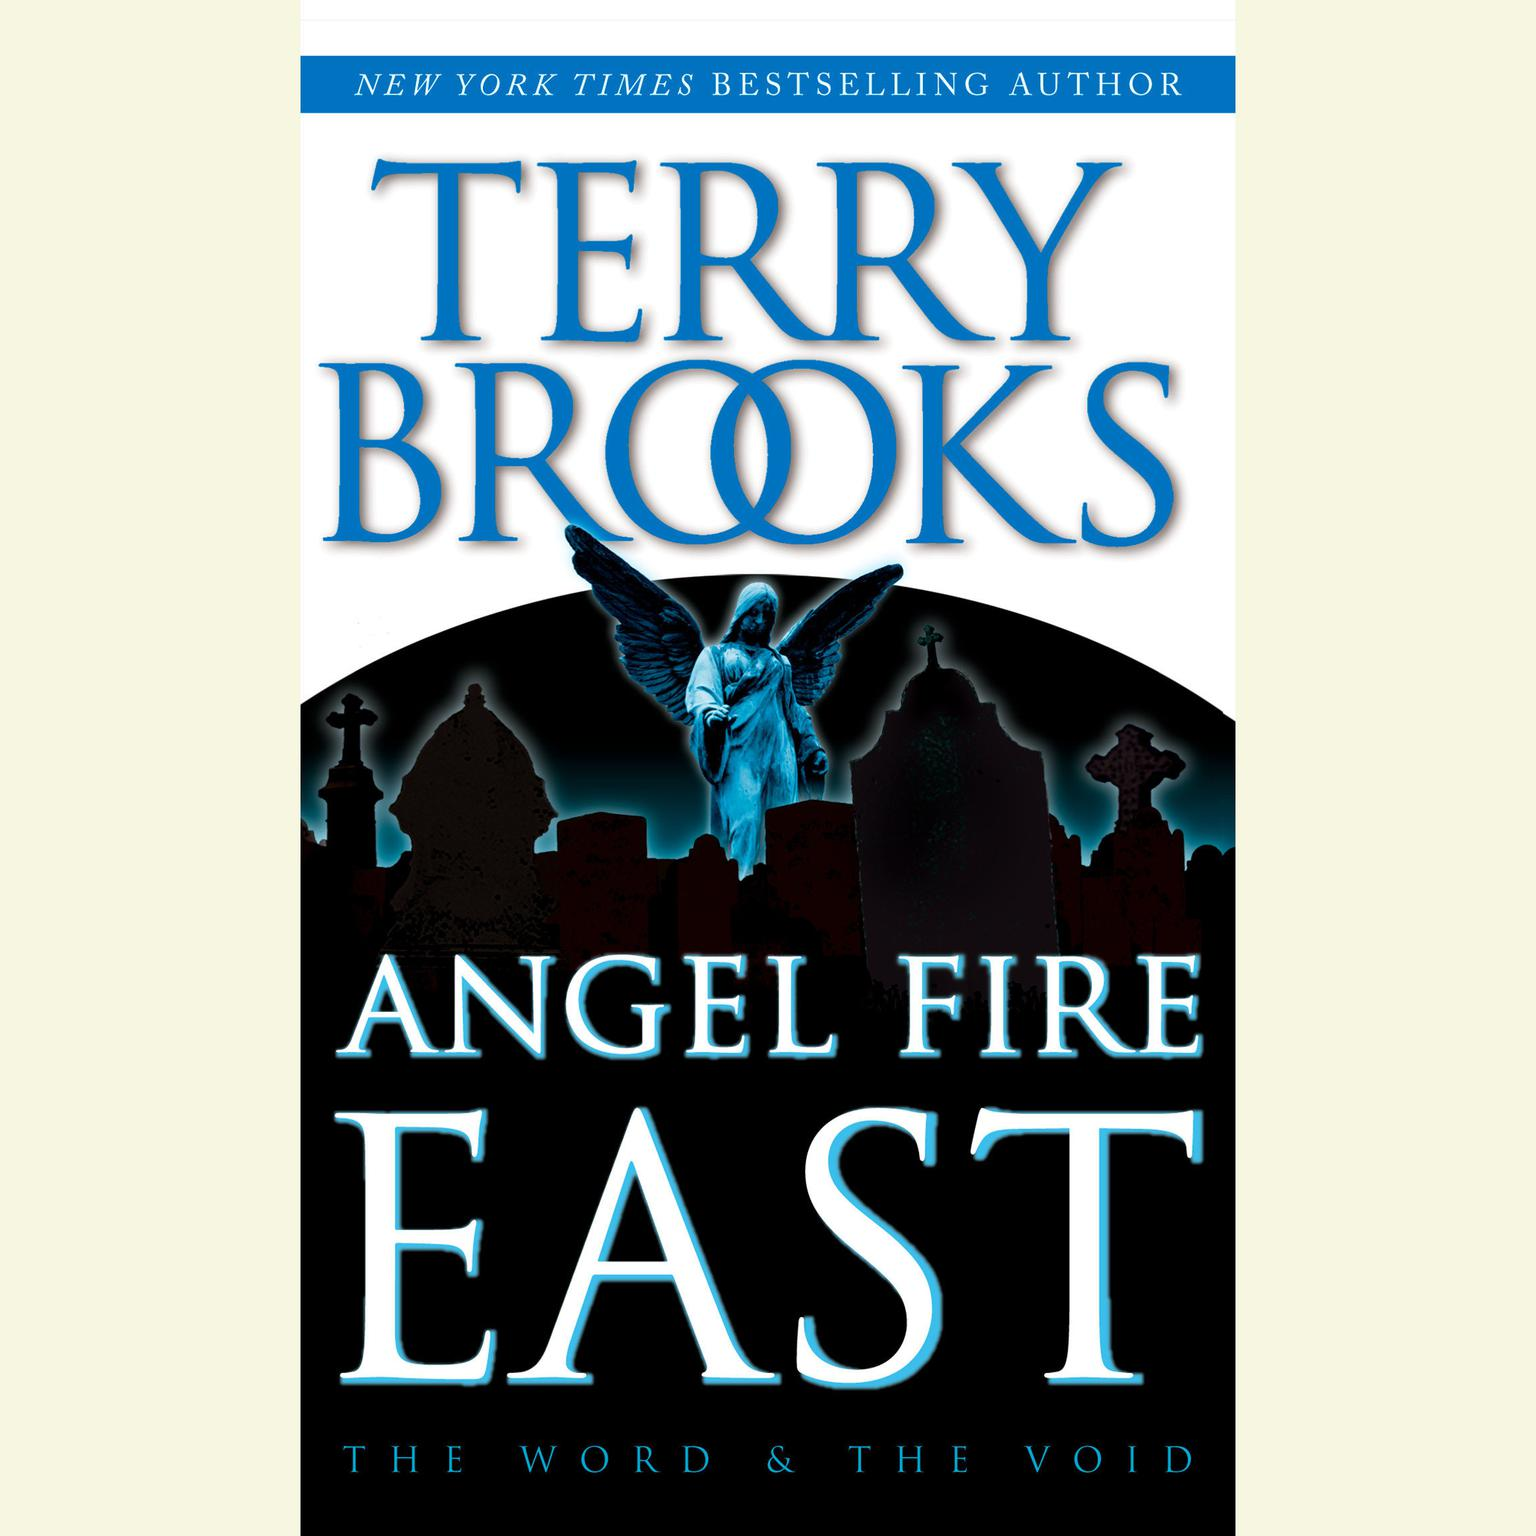 Printable Angel Fire East Audiobook Cover Art